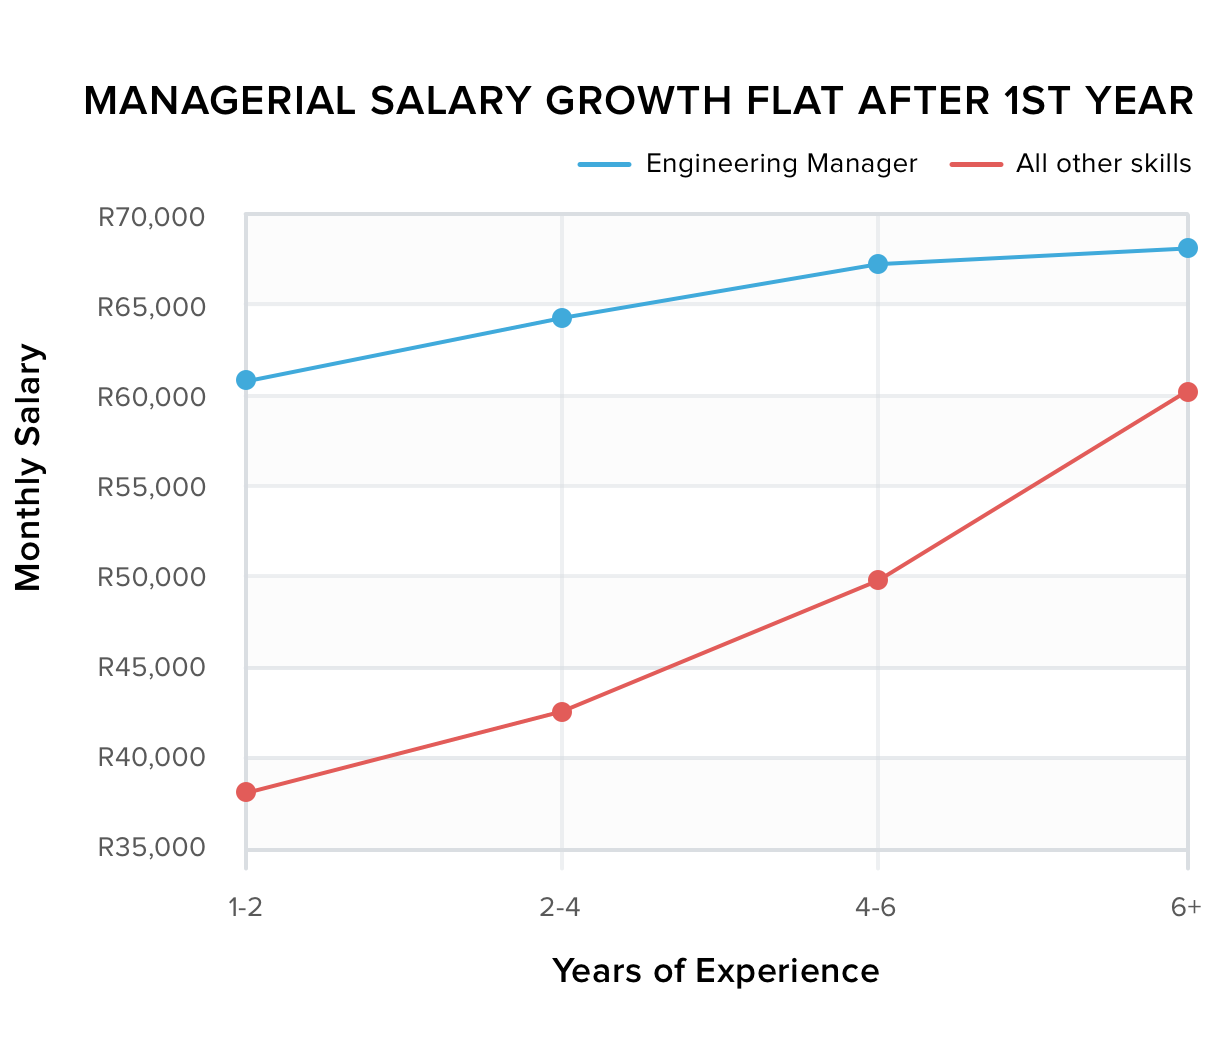 Managerial Salary Growth flat after 1st year